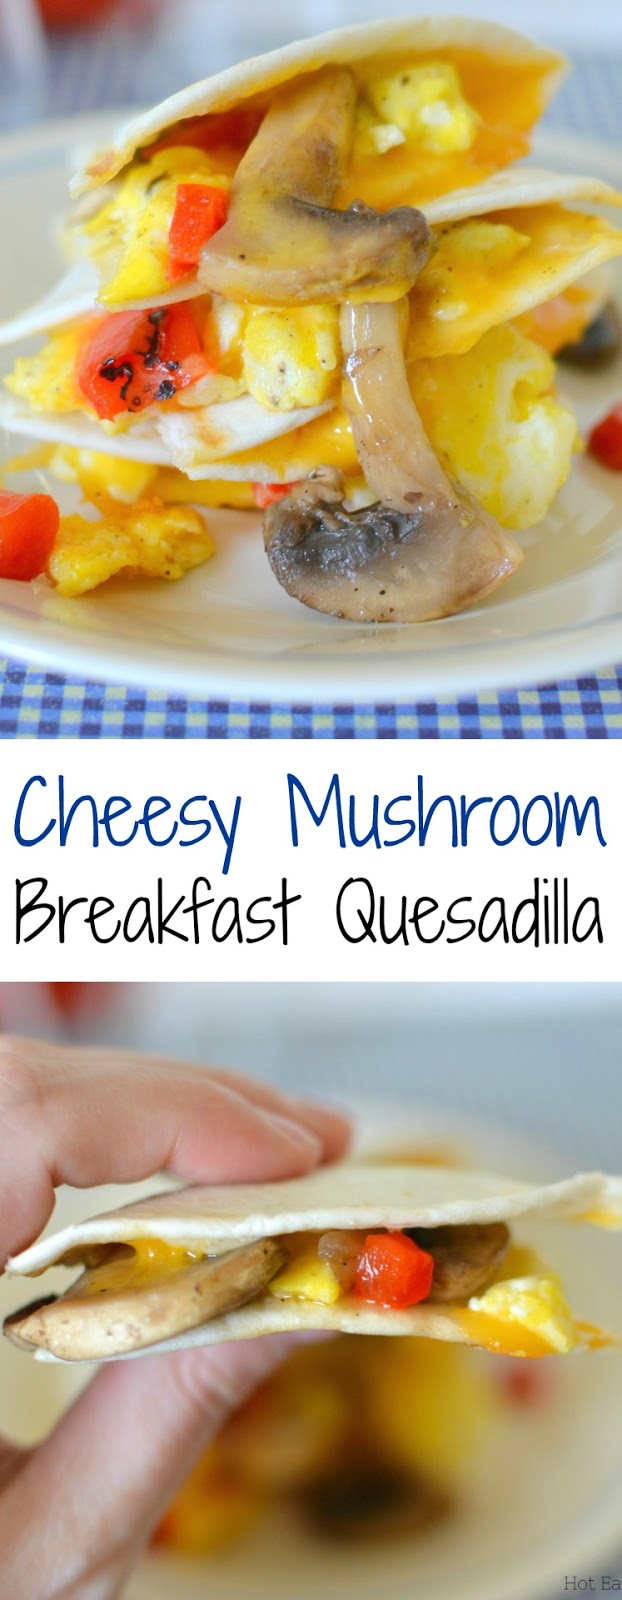 These easy and delicious breakfast mushroom quesadillas are packed with scrambled eggs, roasted red peppers and shredded cheddar cheese! Such a great way to start the day!